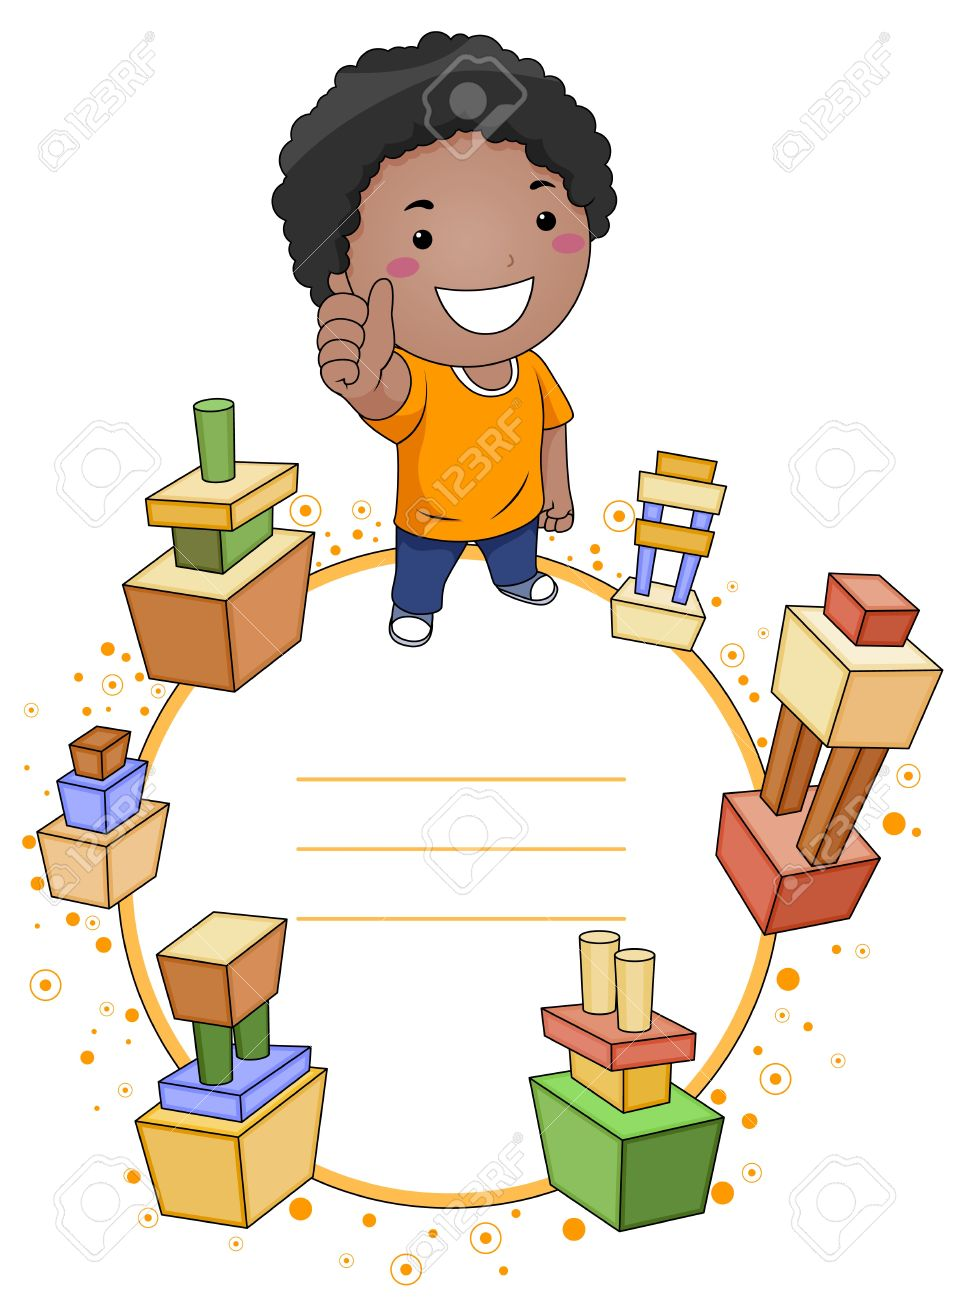 Clipartfest a smiling surrounded. Clipart boy building blocks